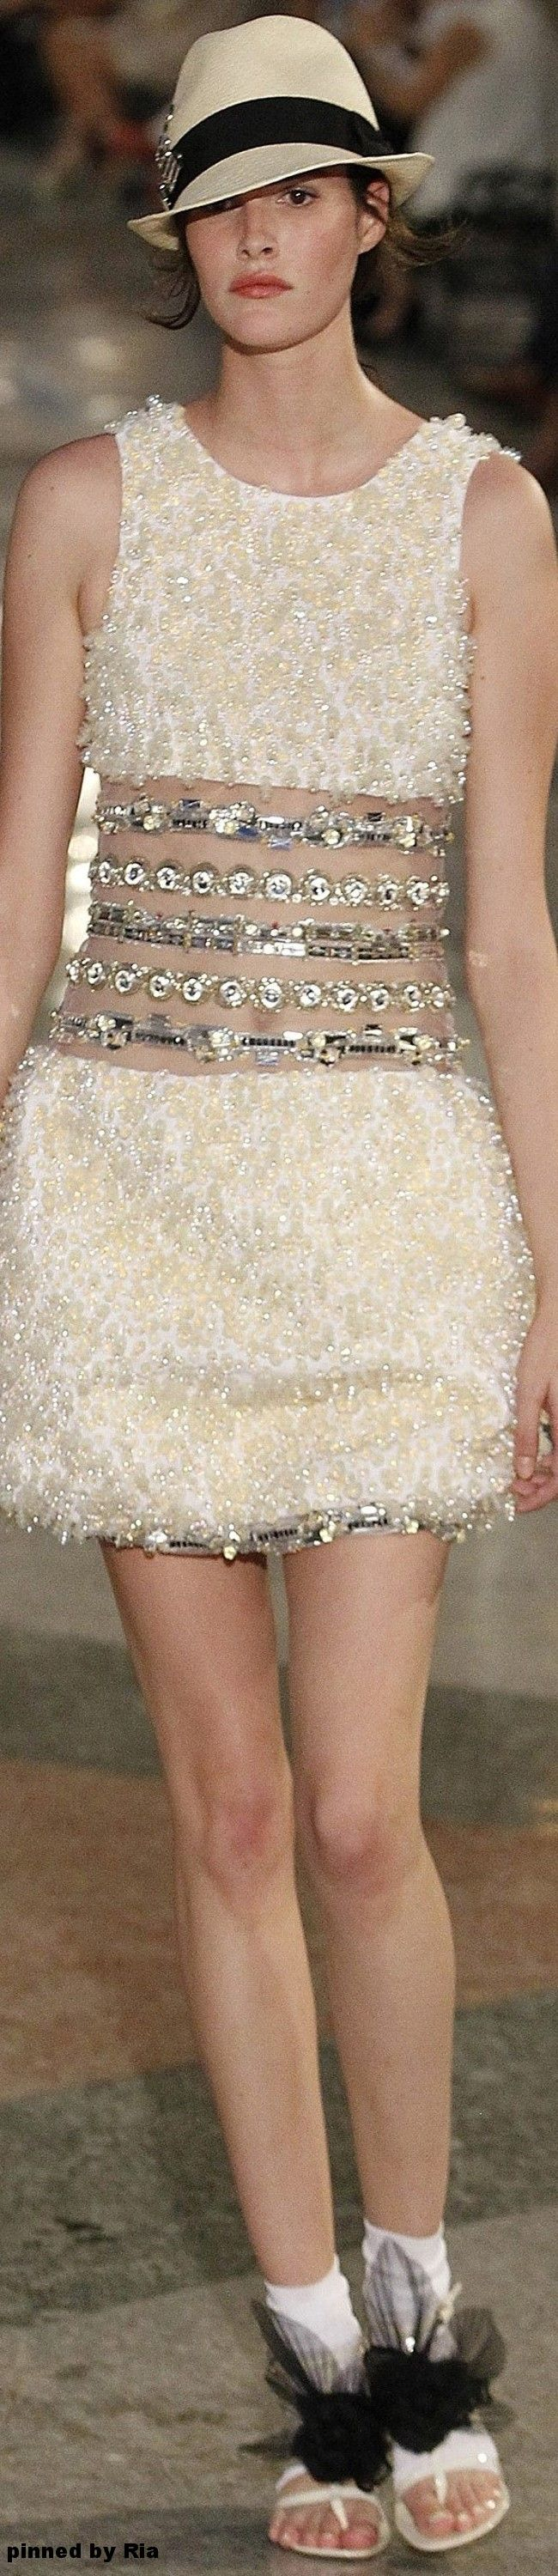 Chanel Resort 2017 l Ria